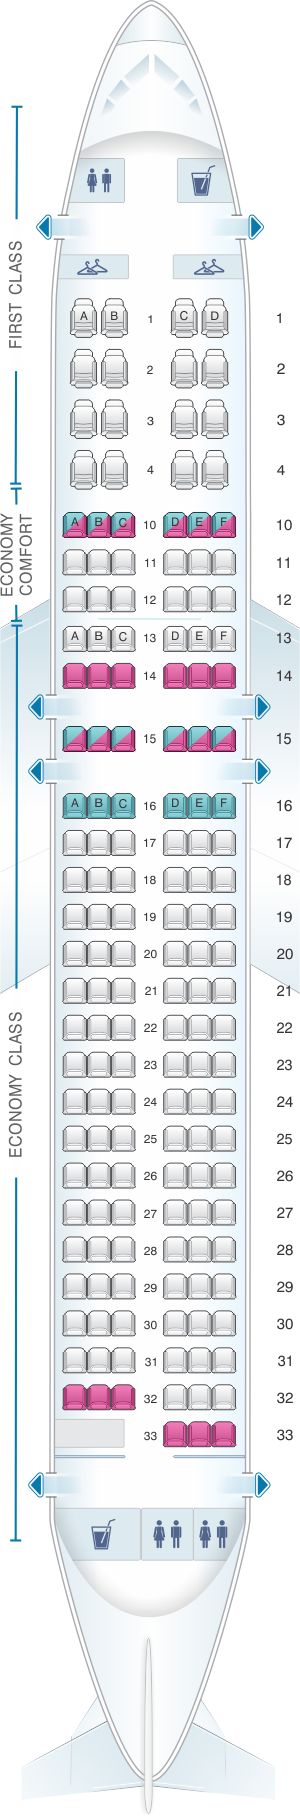 Seat map for Delta Air Lines Airbus A320 200 (32M)